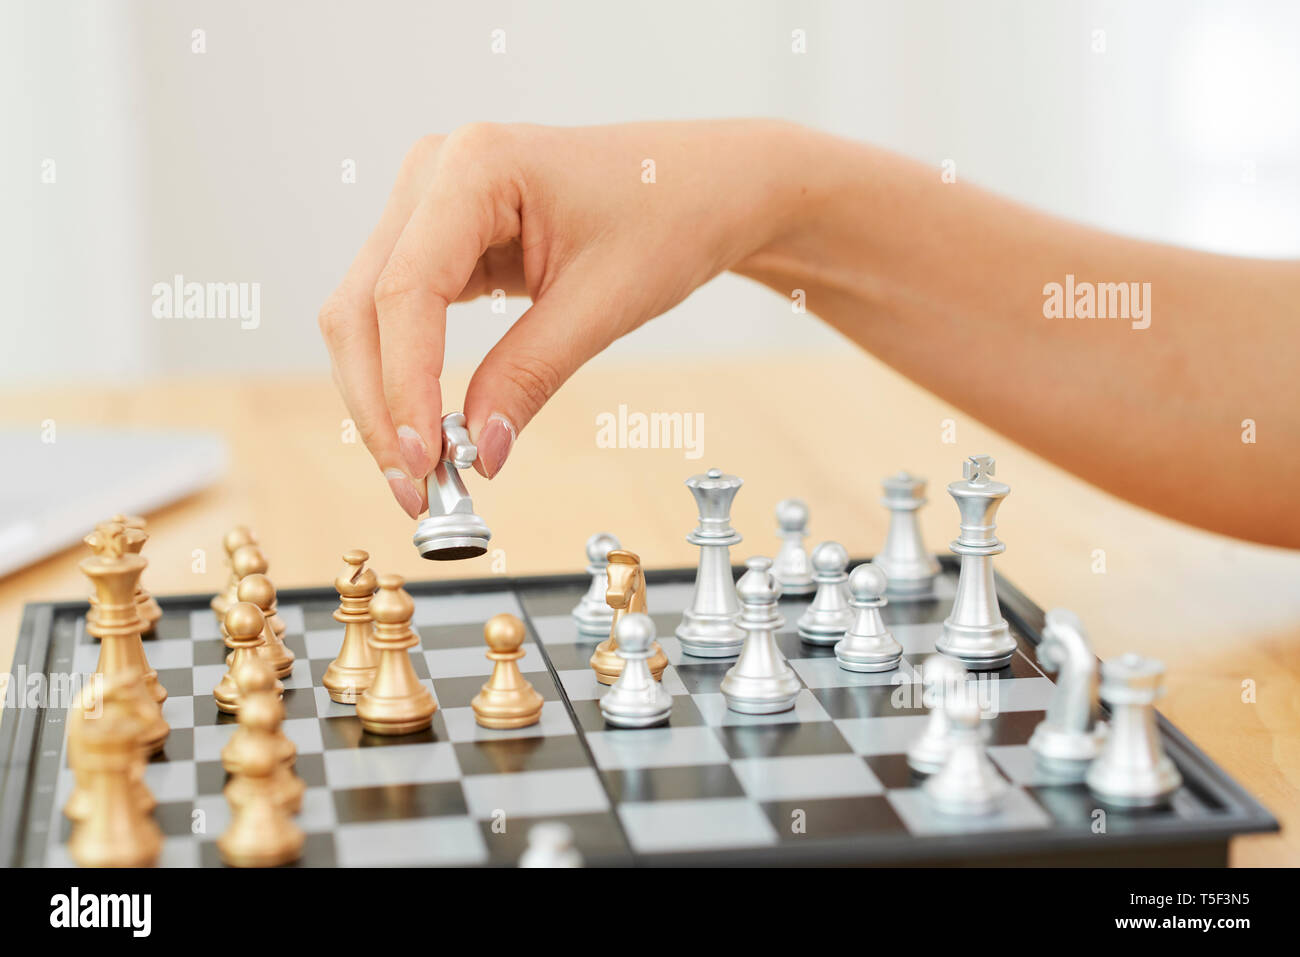 Hand of woman playing chess - Stock Image